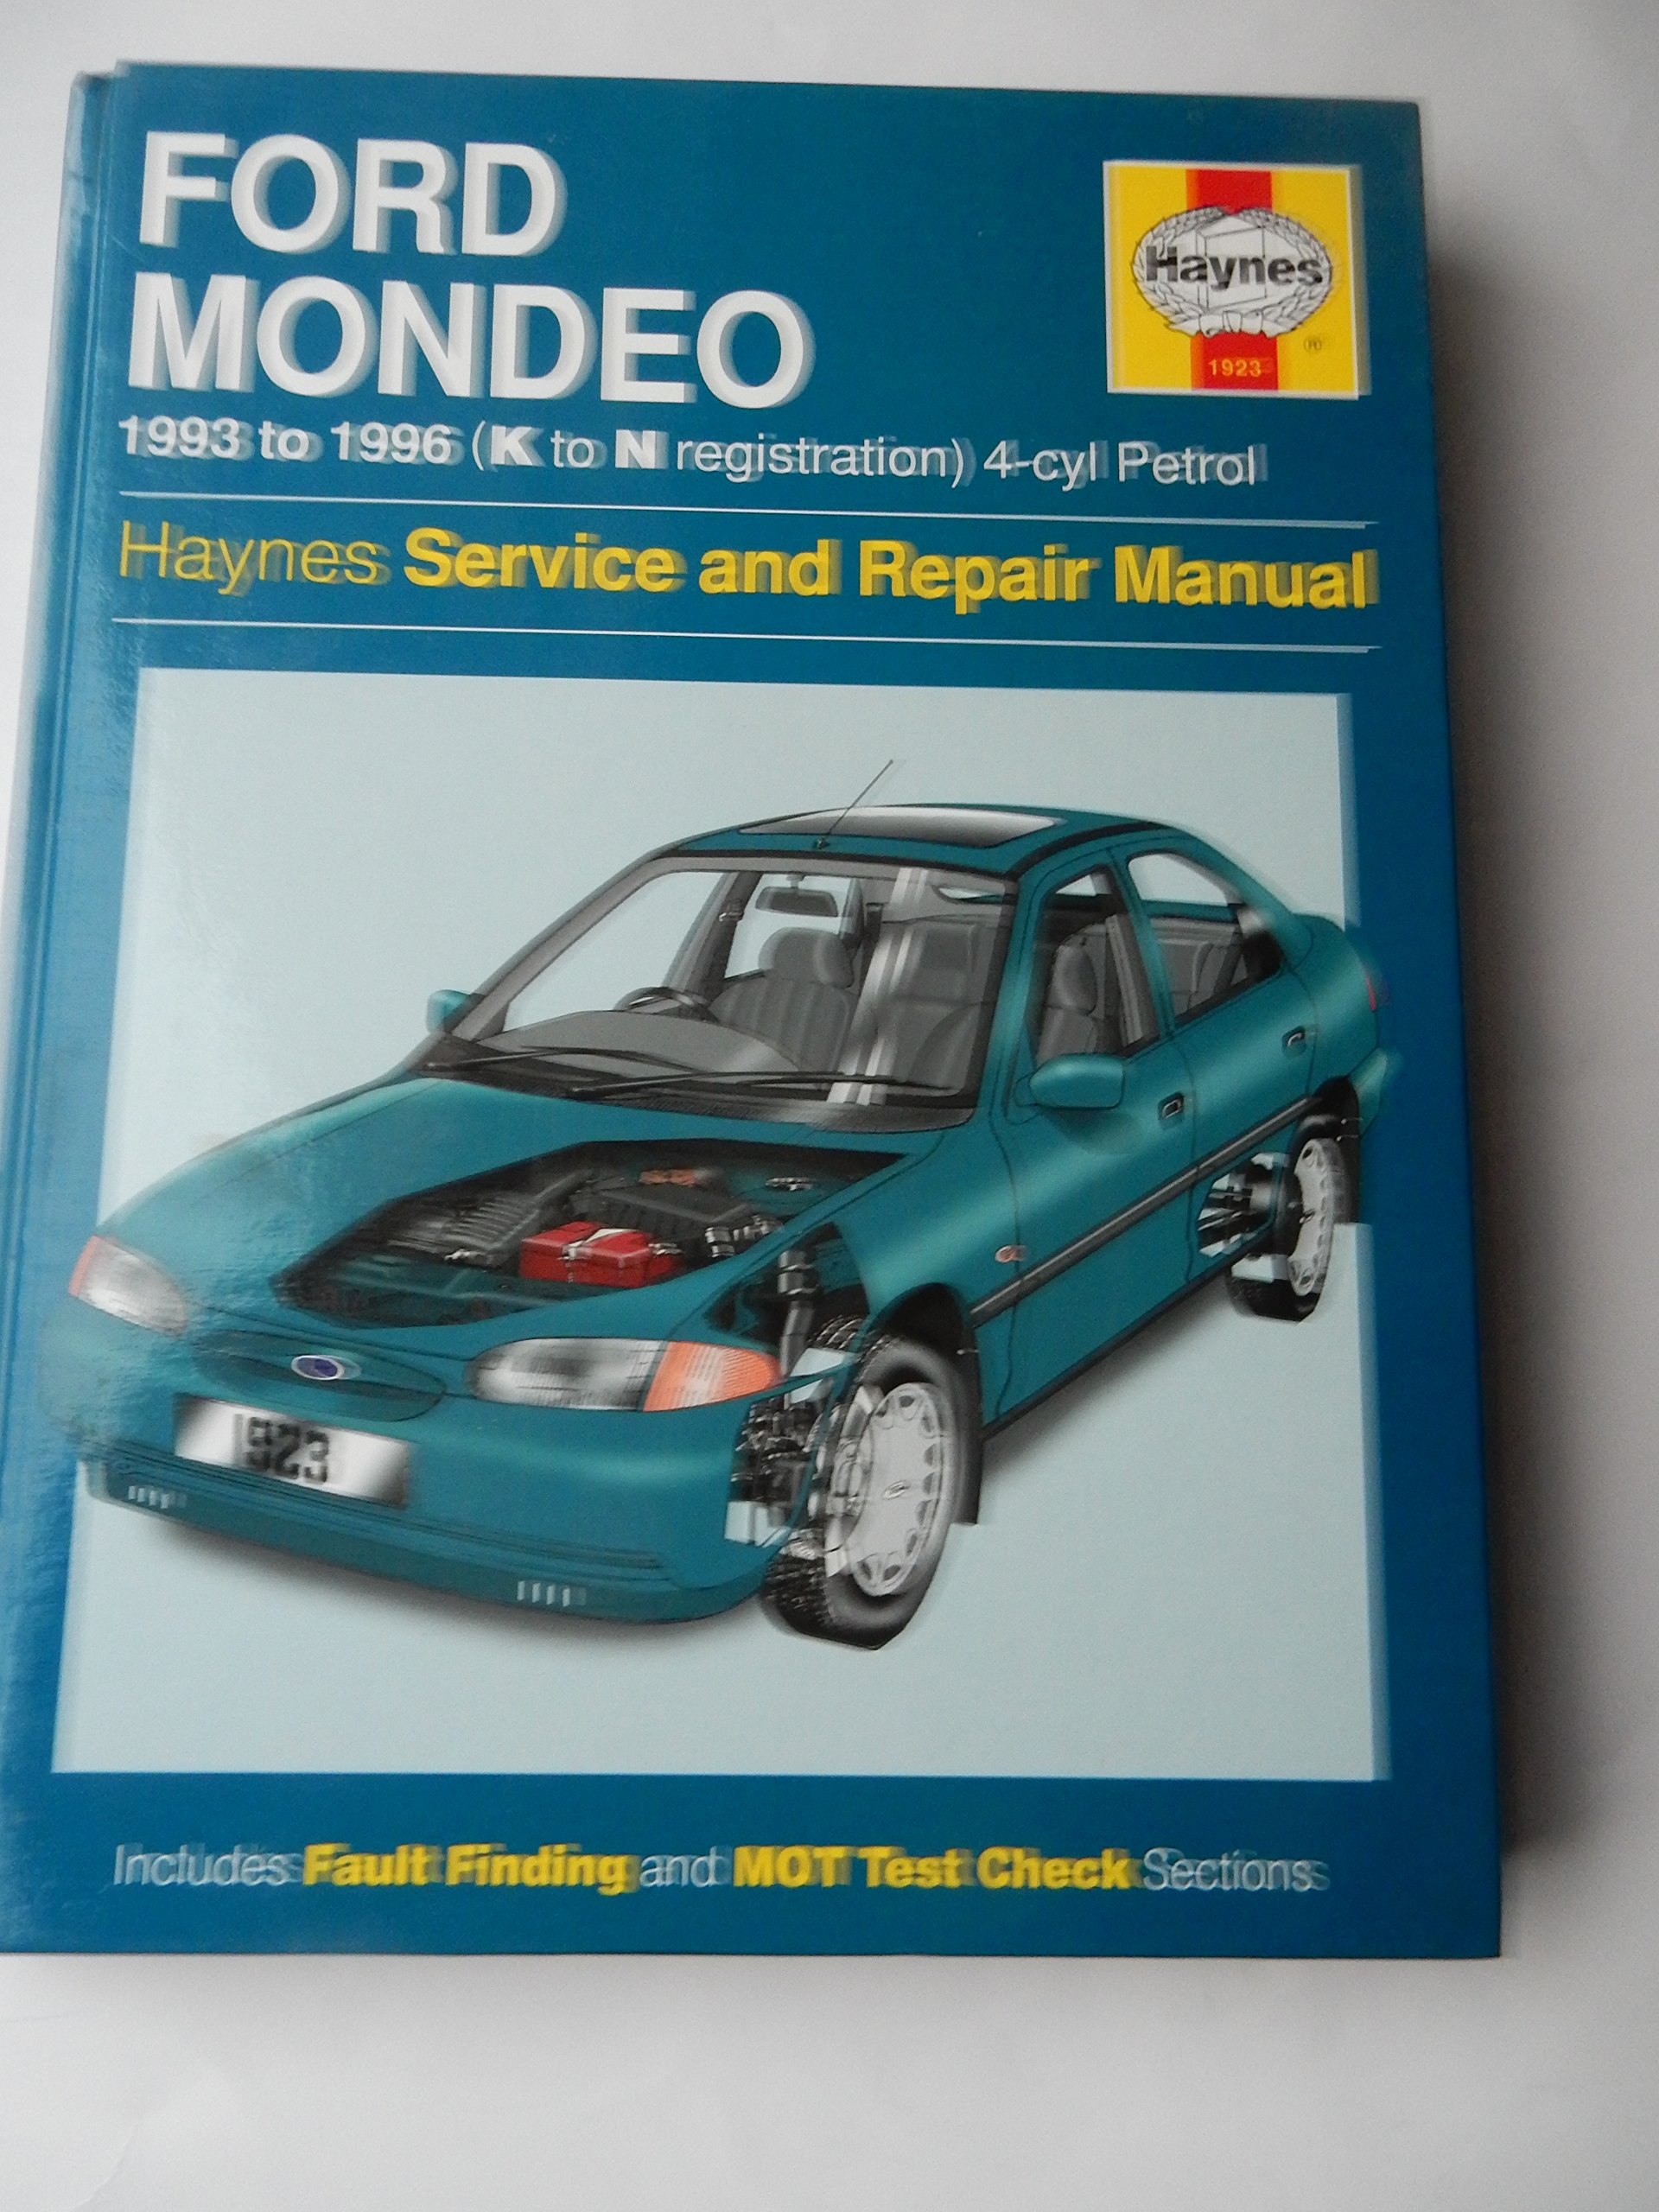 Ford Mondeo Service and Repair Manual 1993-1996 (Haynes Service and Repair  Manuals): Jeremy Churchill, A. K. Legg: 9781859601679: Amazon.com: Books